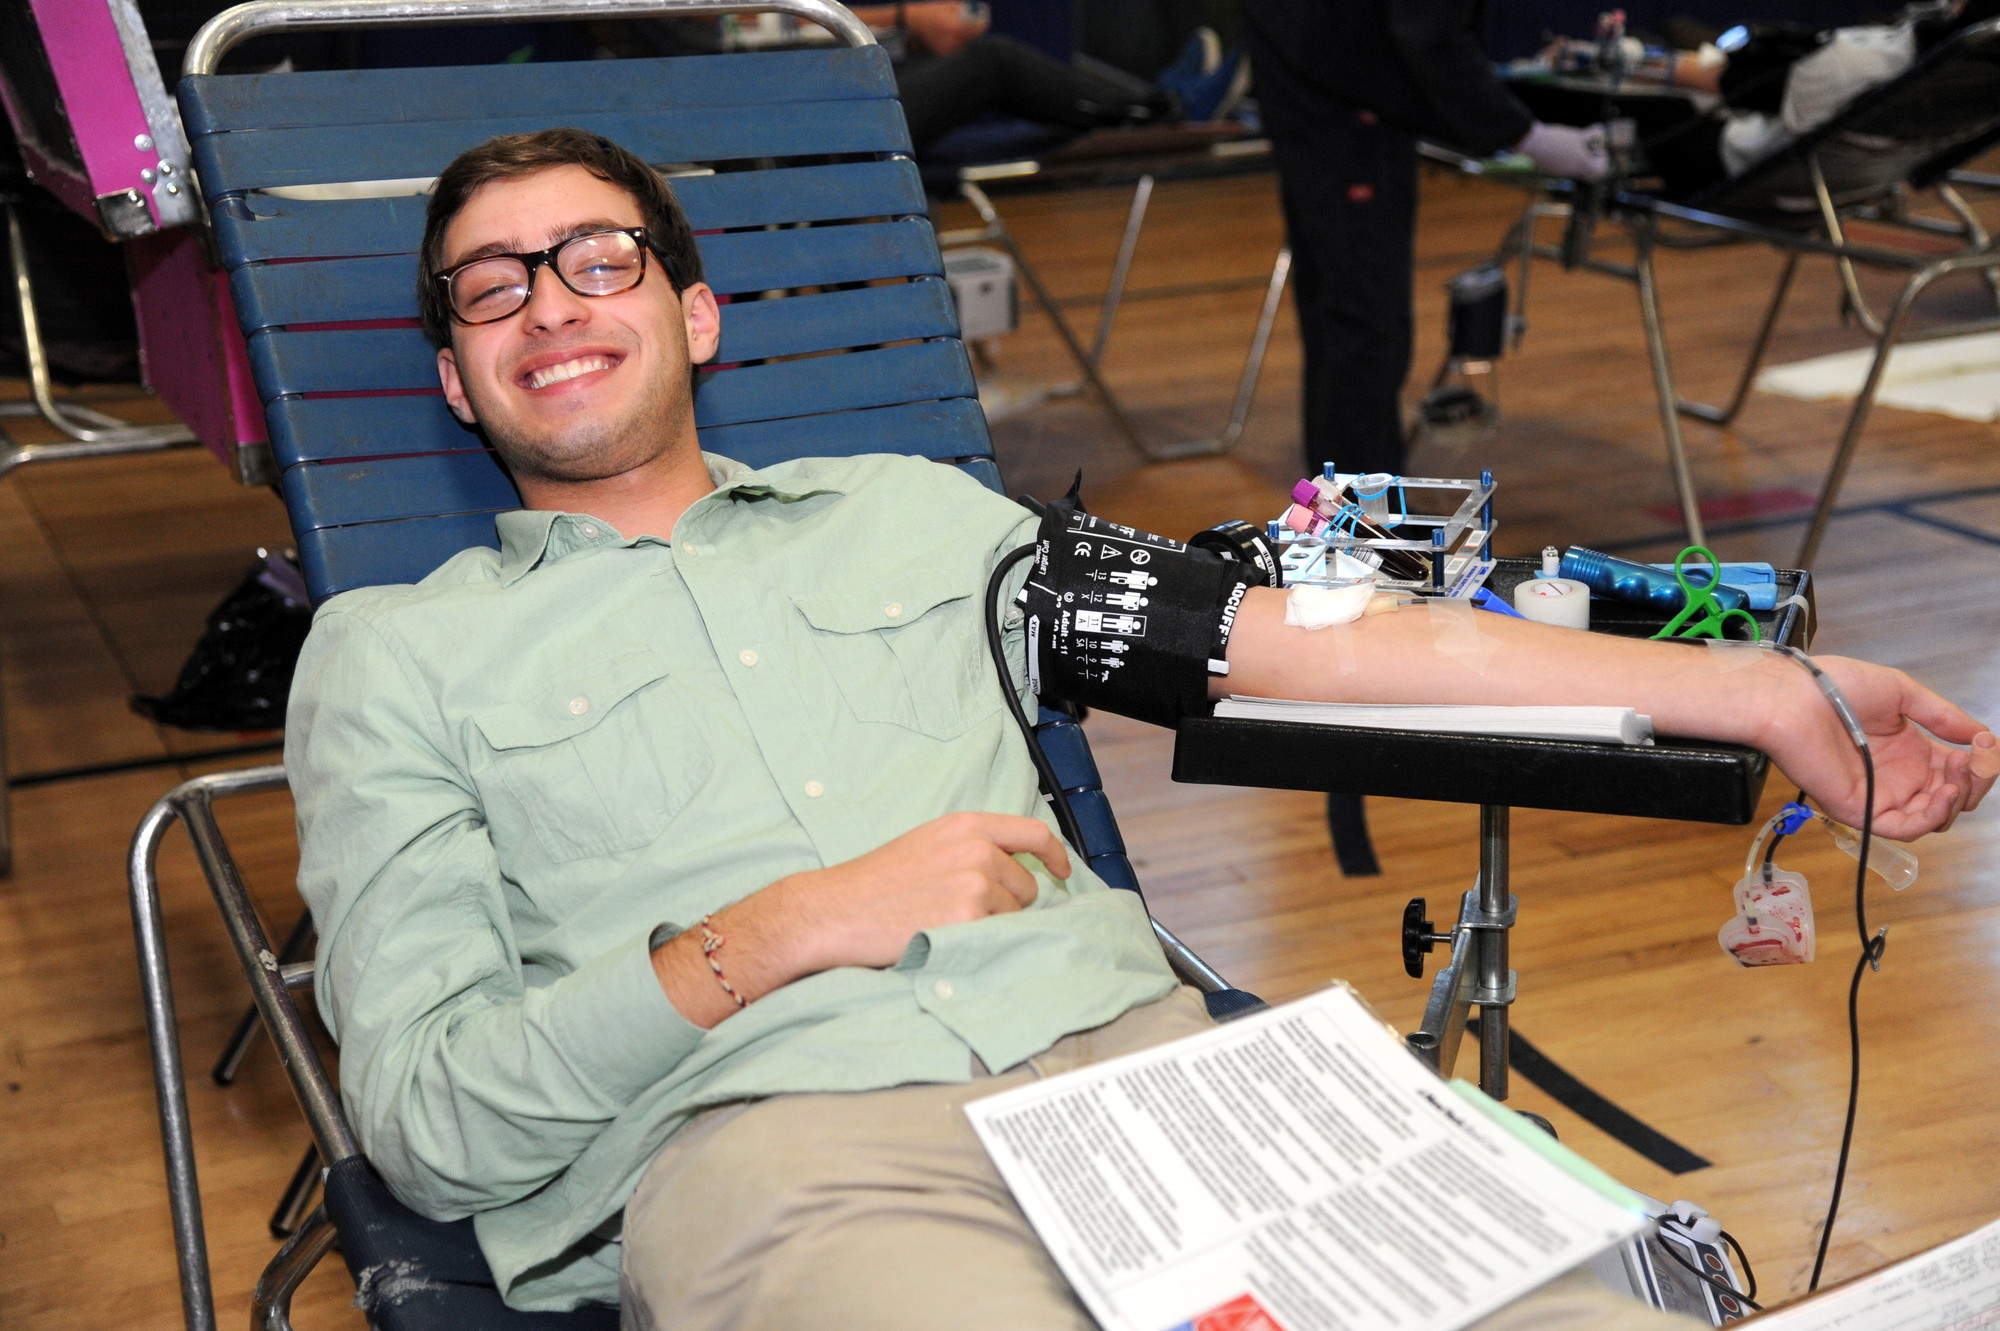 In conjunction with the New York Blood Center, HAFTR High School held a blood drive on Nov. 18, and student Matthew Sulzheiger, 17, donated a pint.